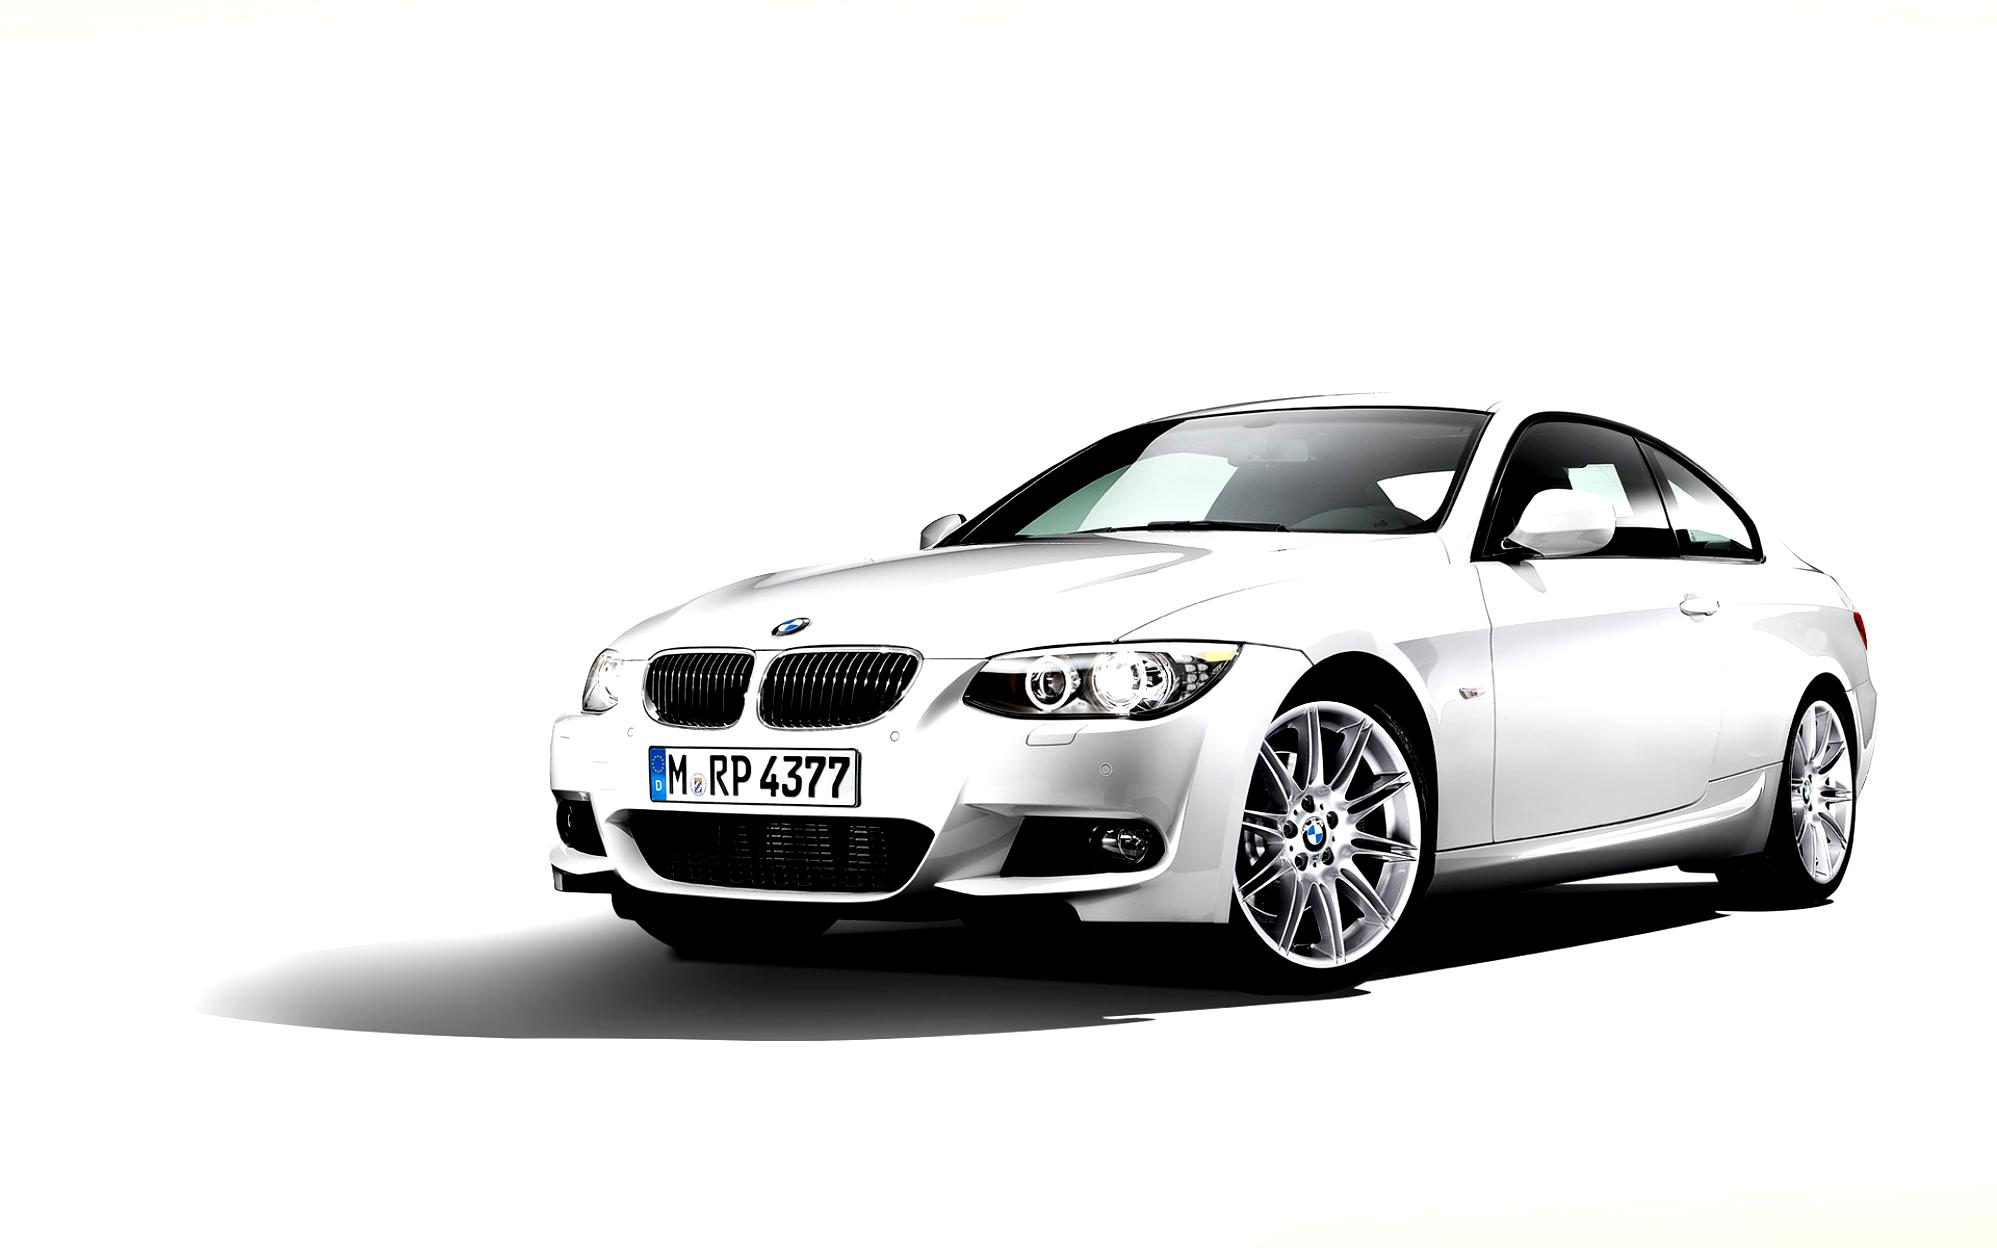 bmw m3 coupe e92 lci 2010 photos 5 on. Black Bedroom Furniture Sets. Home Design Ideas